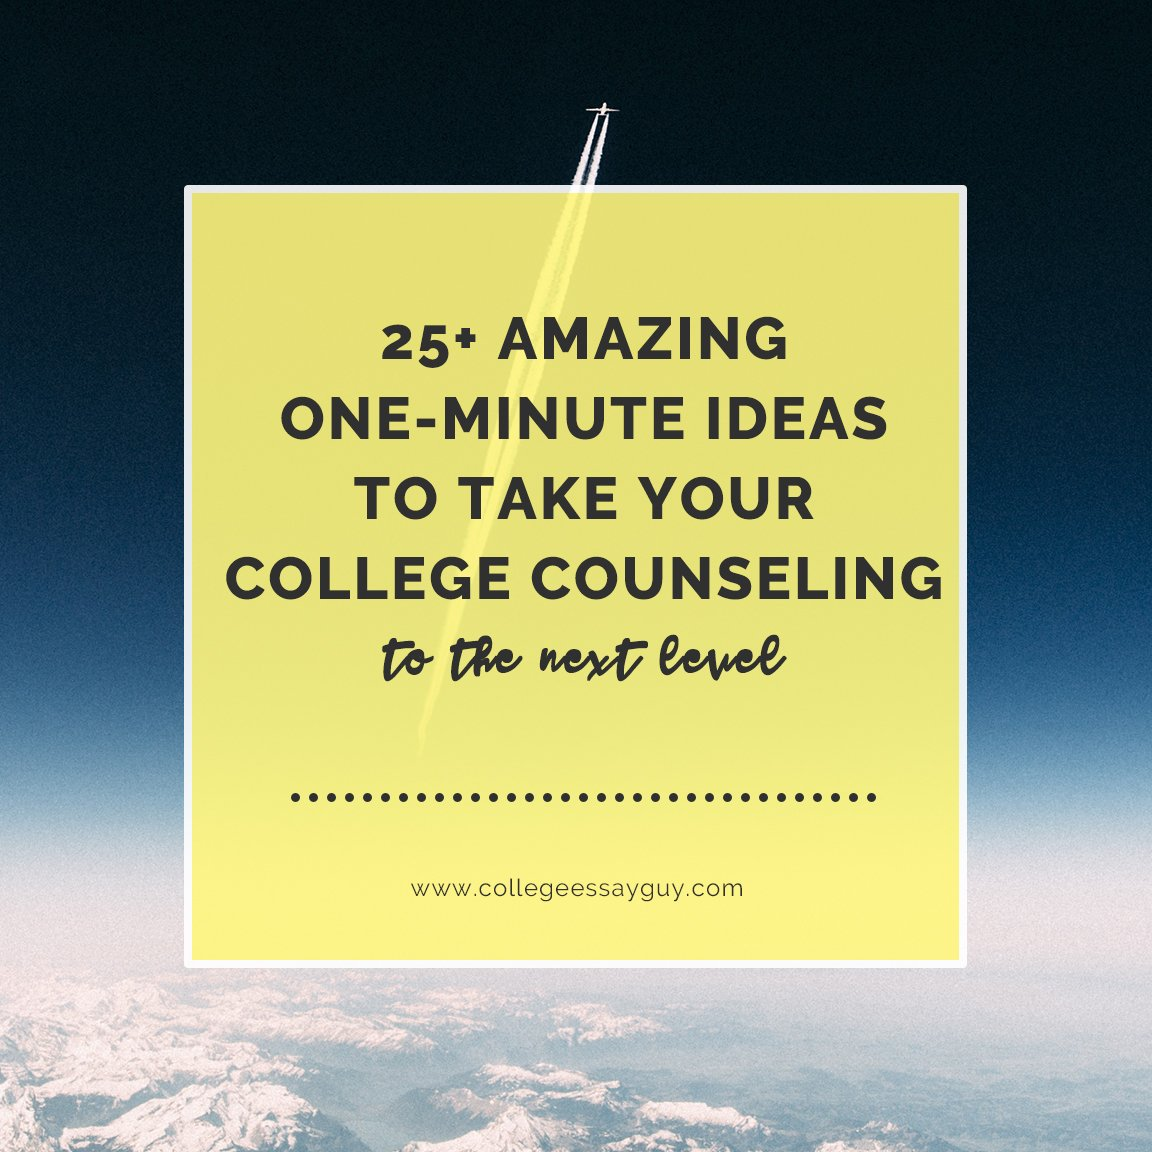 My colleagues (Evelyn Alexander and Casey Rowley) and I spent several weeks in early 2017 asking some of the best counselors in the land for their best advice. We curated their top tips … and here are 25+ tips to improve your counseling life! goo.gl/LsaZSt